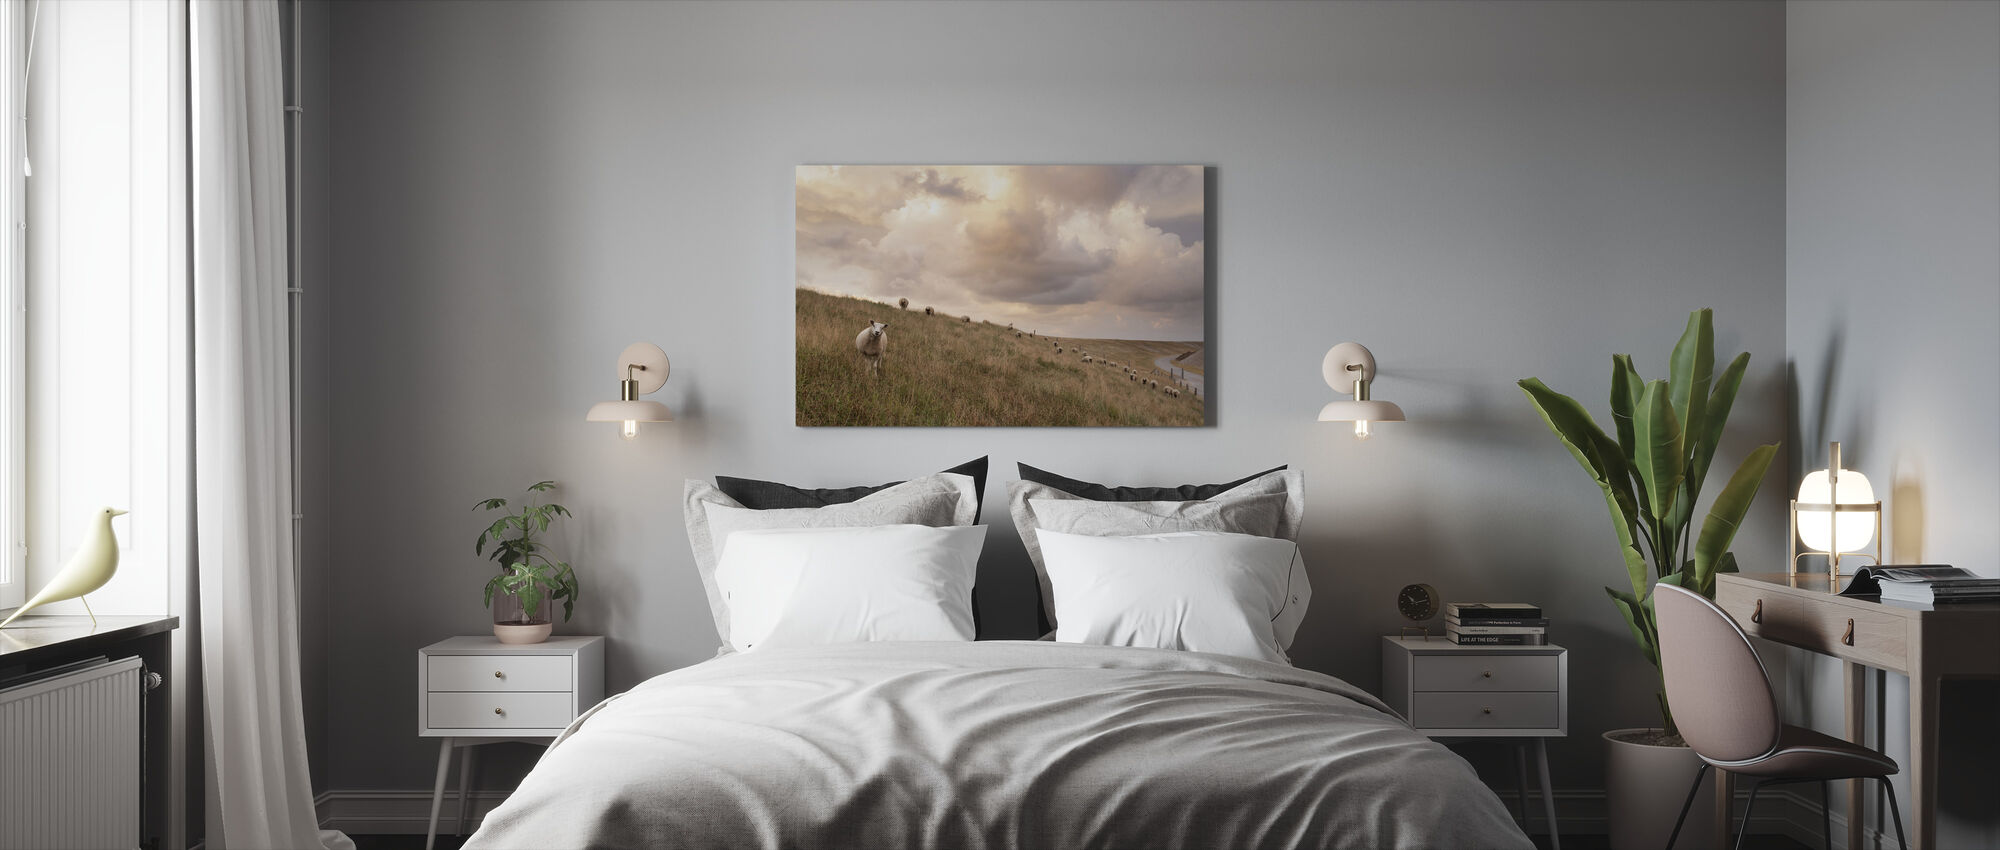 Attentive Sheep - Canvas print - Bedroom